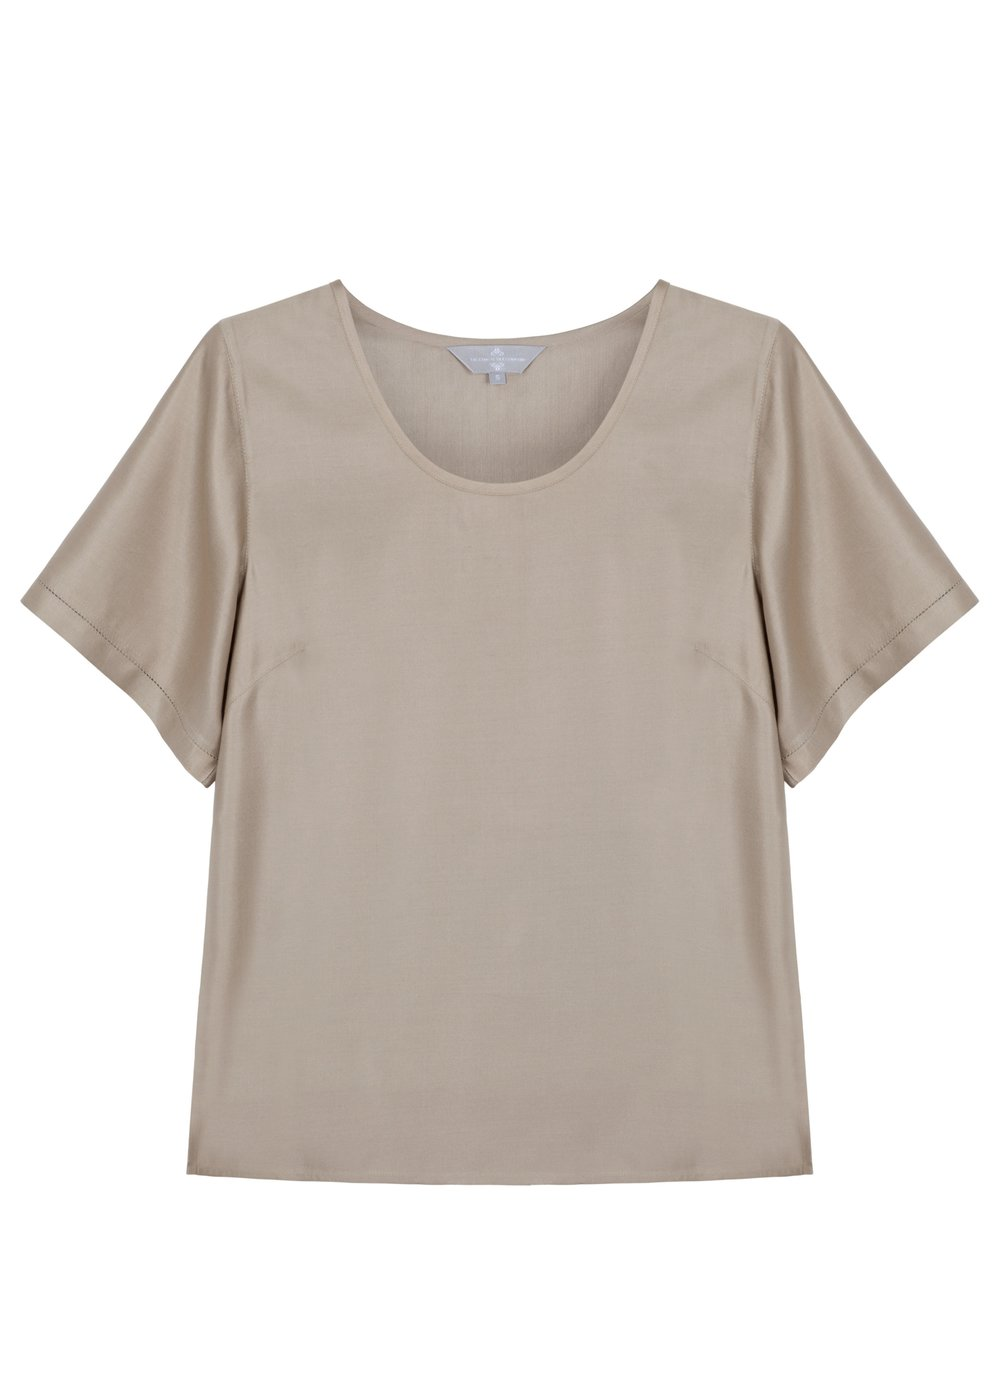 The Ethical Silk Co - Lunar Grey Silk Top - High Res.JPG